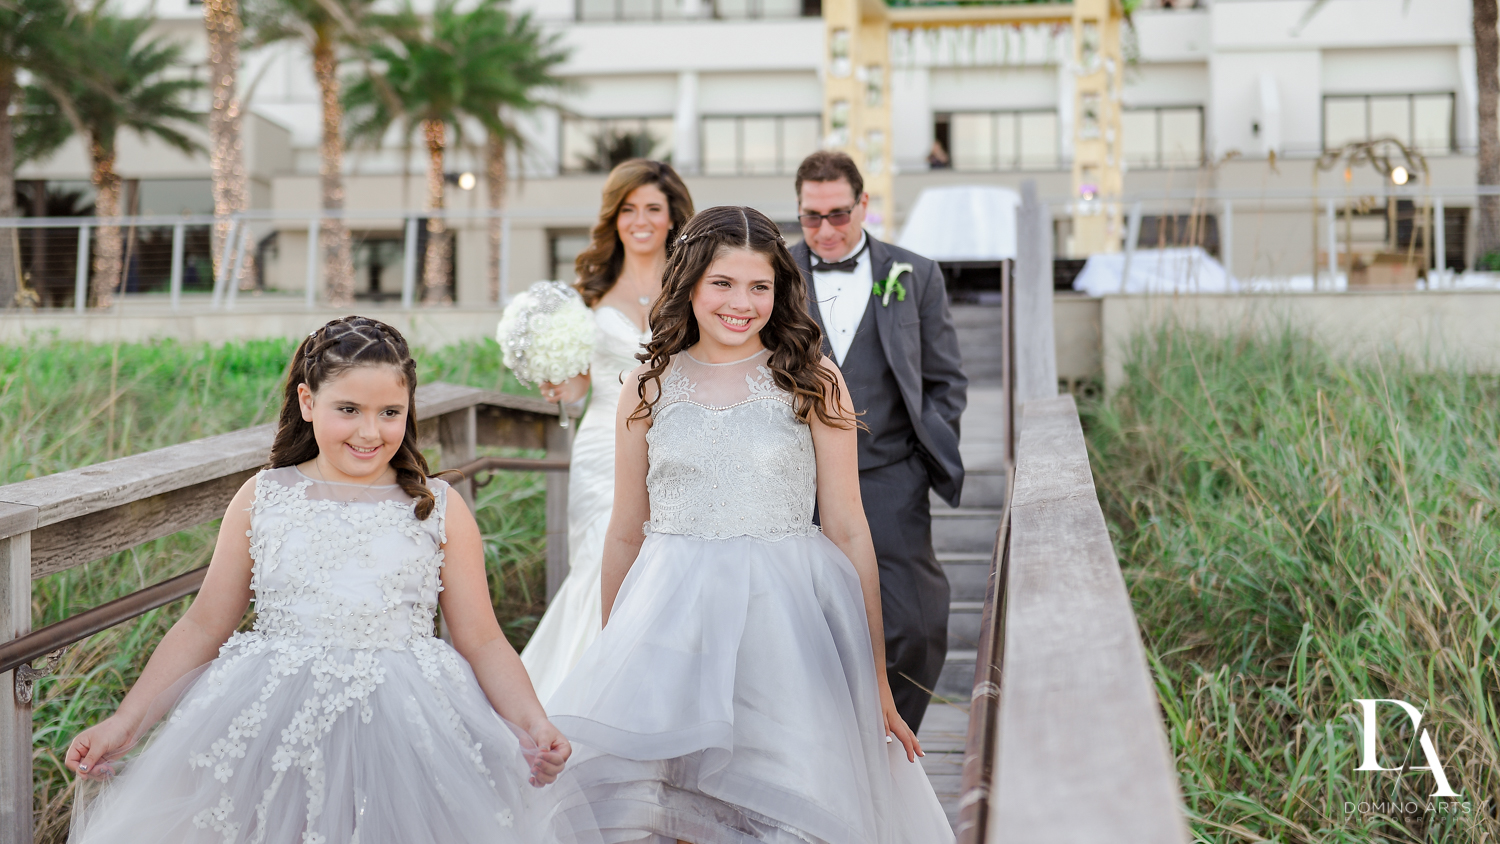 Spontaneous Wedding Photography in South Florida at Fort Lauderdale Marriott Harbor Beach Resort & Spa by Domino Arts Photography